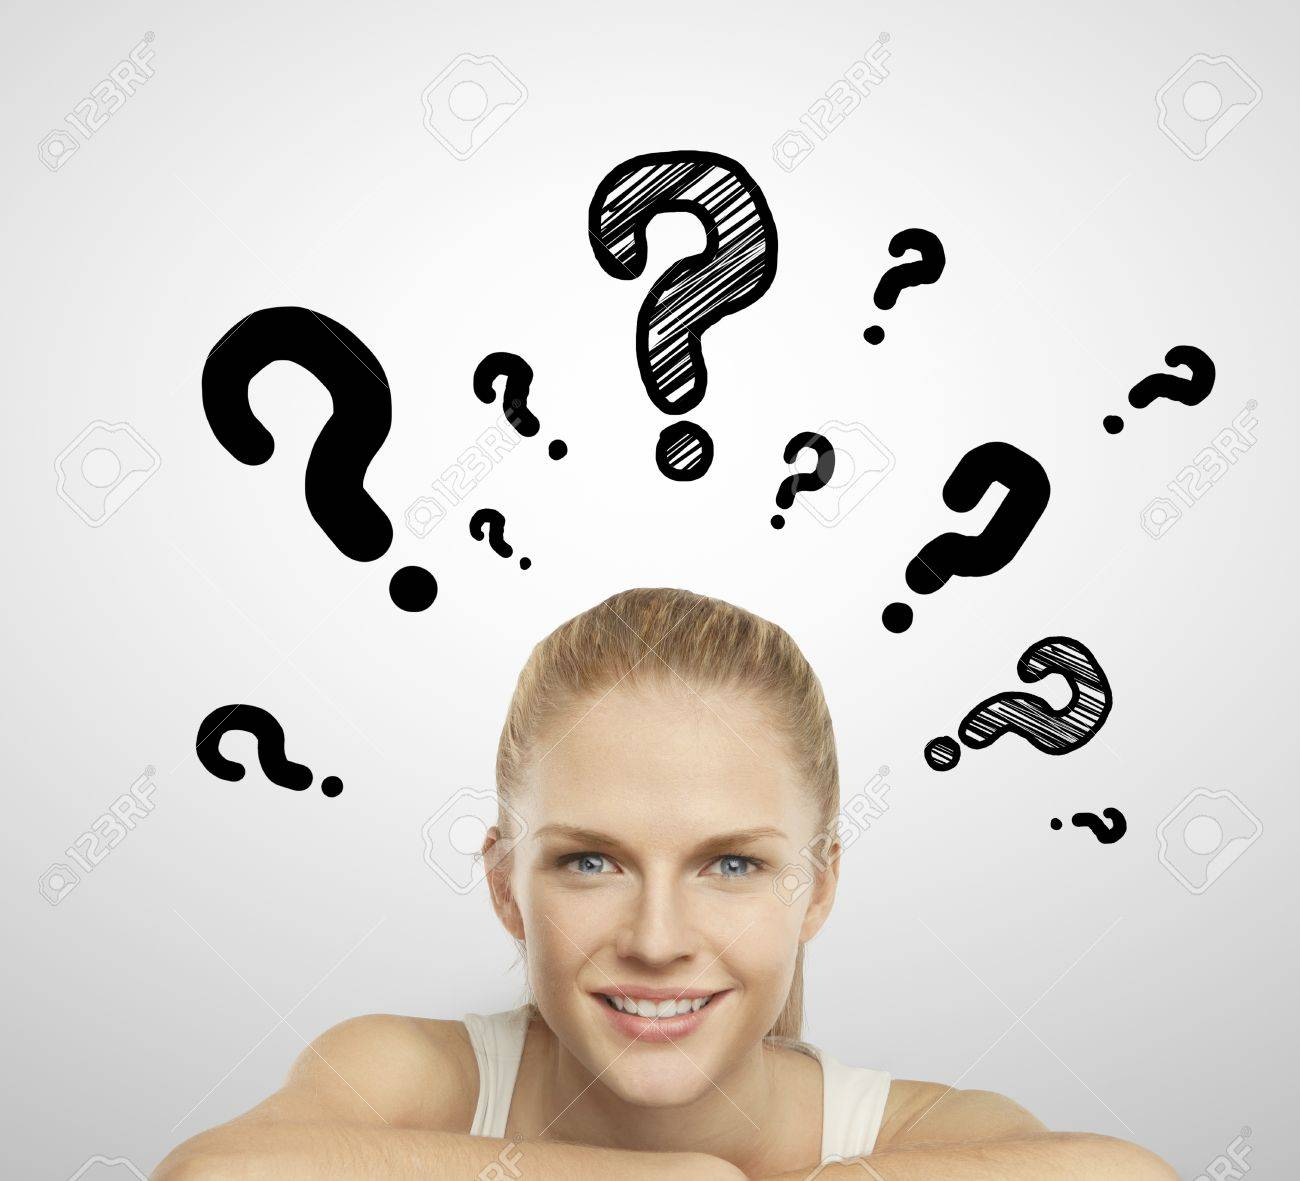 woman smiling and question mark over head Stock Photo - 19063800